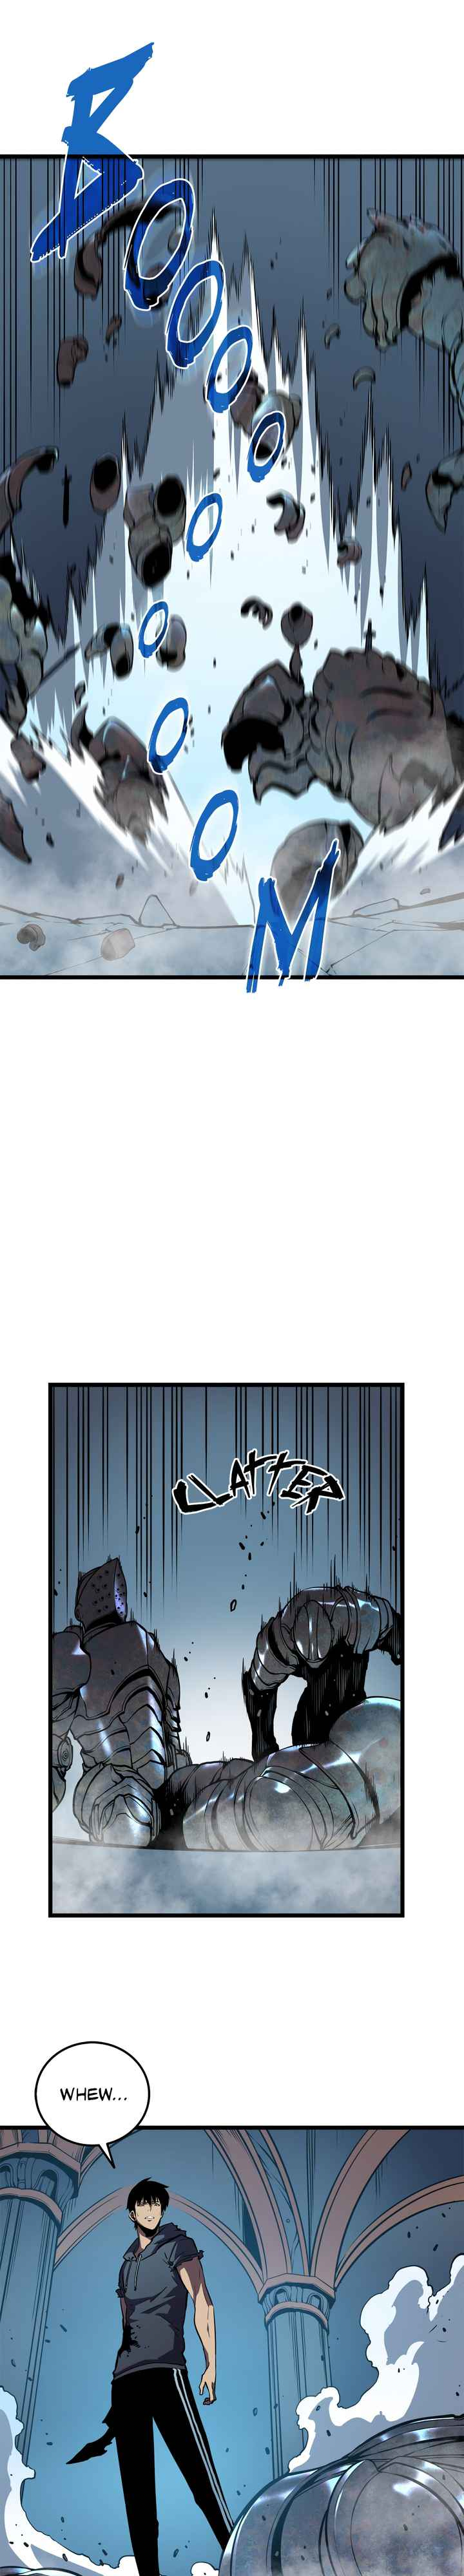 Solo Leveling Chapter 44 Page 20